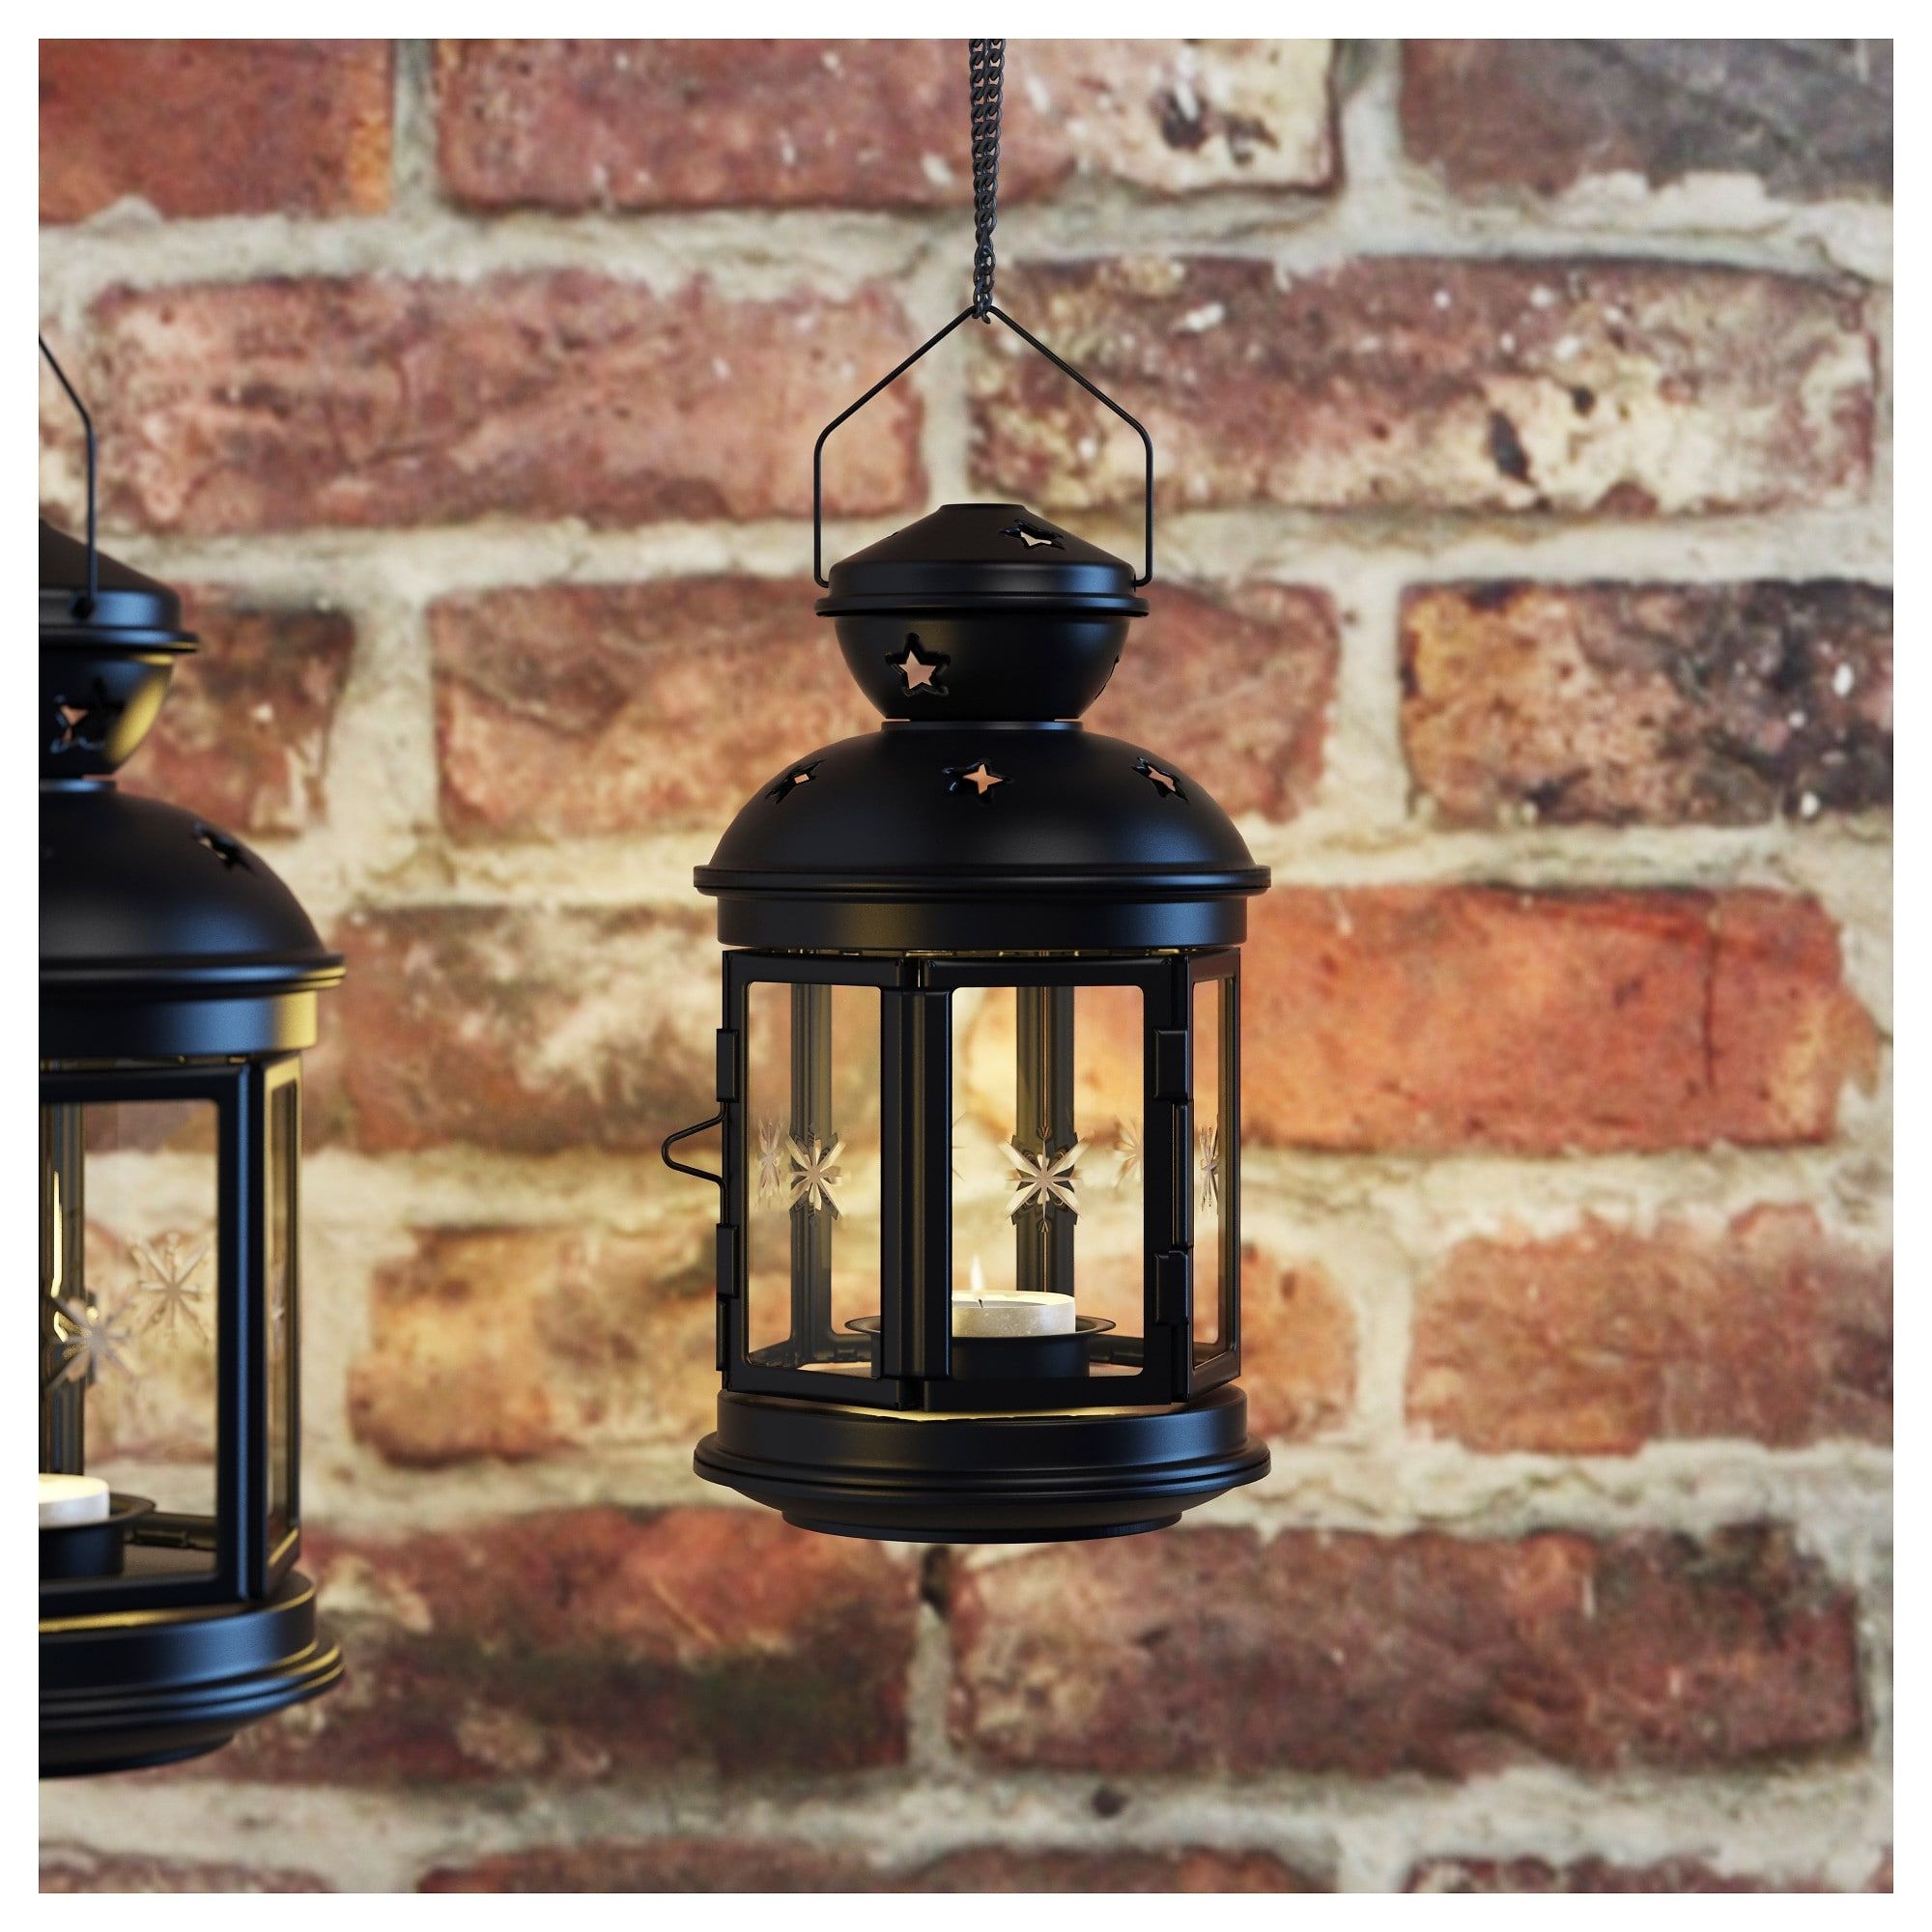 Rotera Lantern For Tealight – Ikea Intended For Fashionable Ikea Outdoor Lanterns (View 11 of 20)